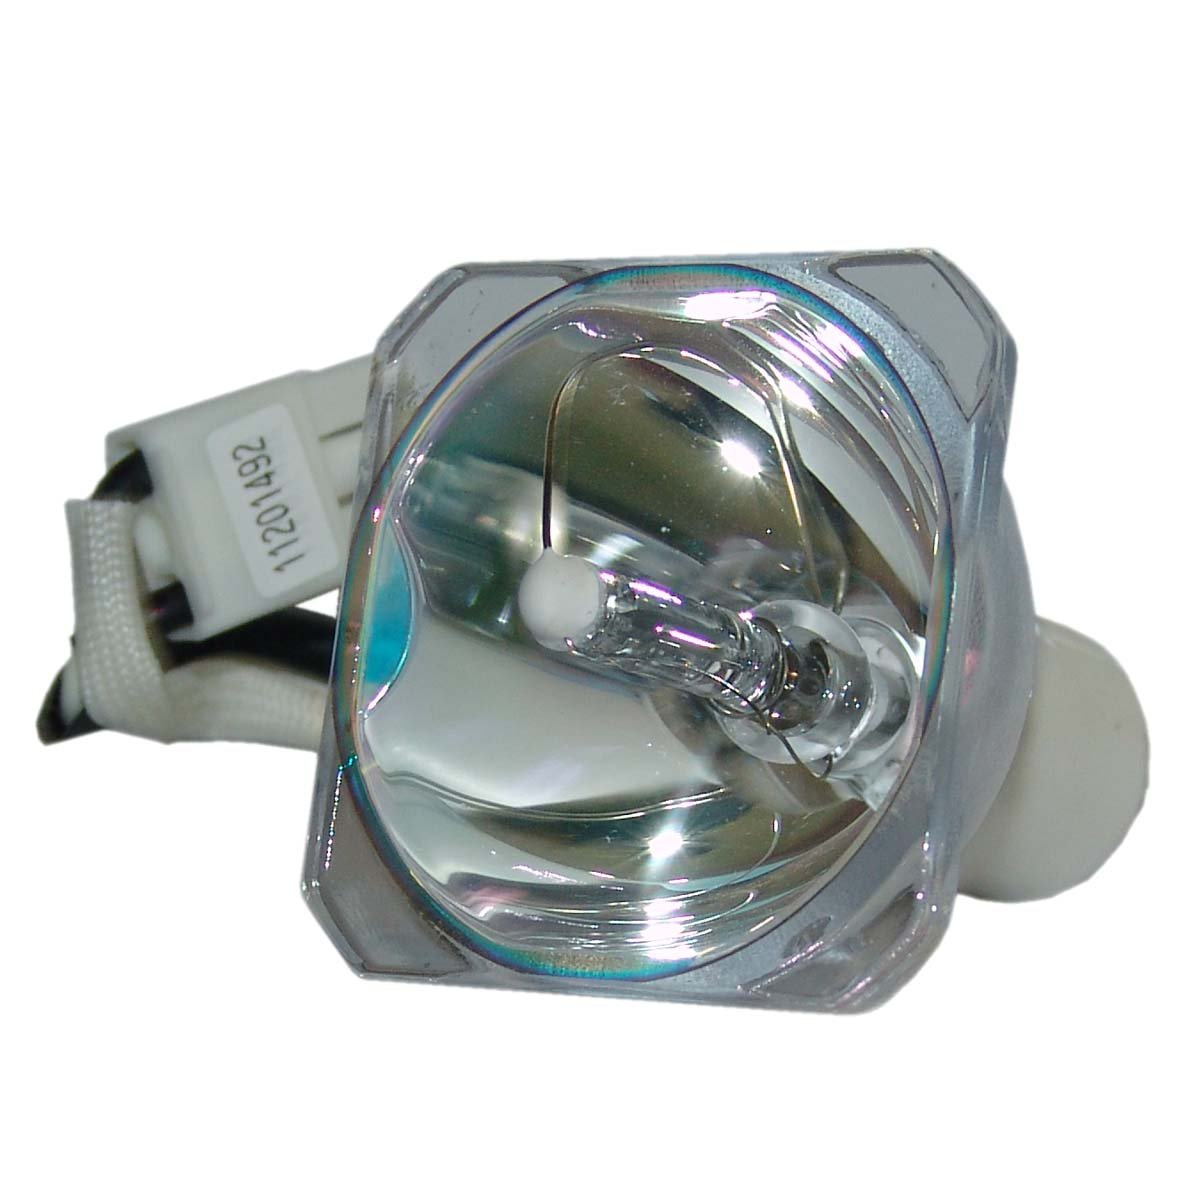 Lutema OEM プロジェクター交換用ランプ ハウジング/電球付き Vivitek D538W-3D用 Platinum (Brighter/Durable) B07KTKKN5H Lamp Only Platinum (Brighter/Durable)